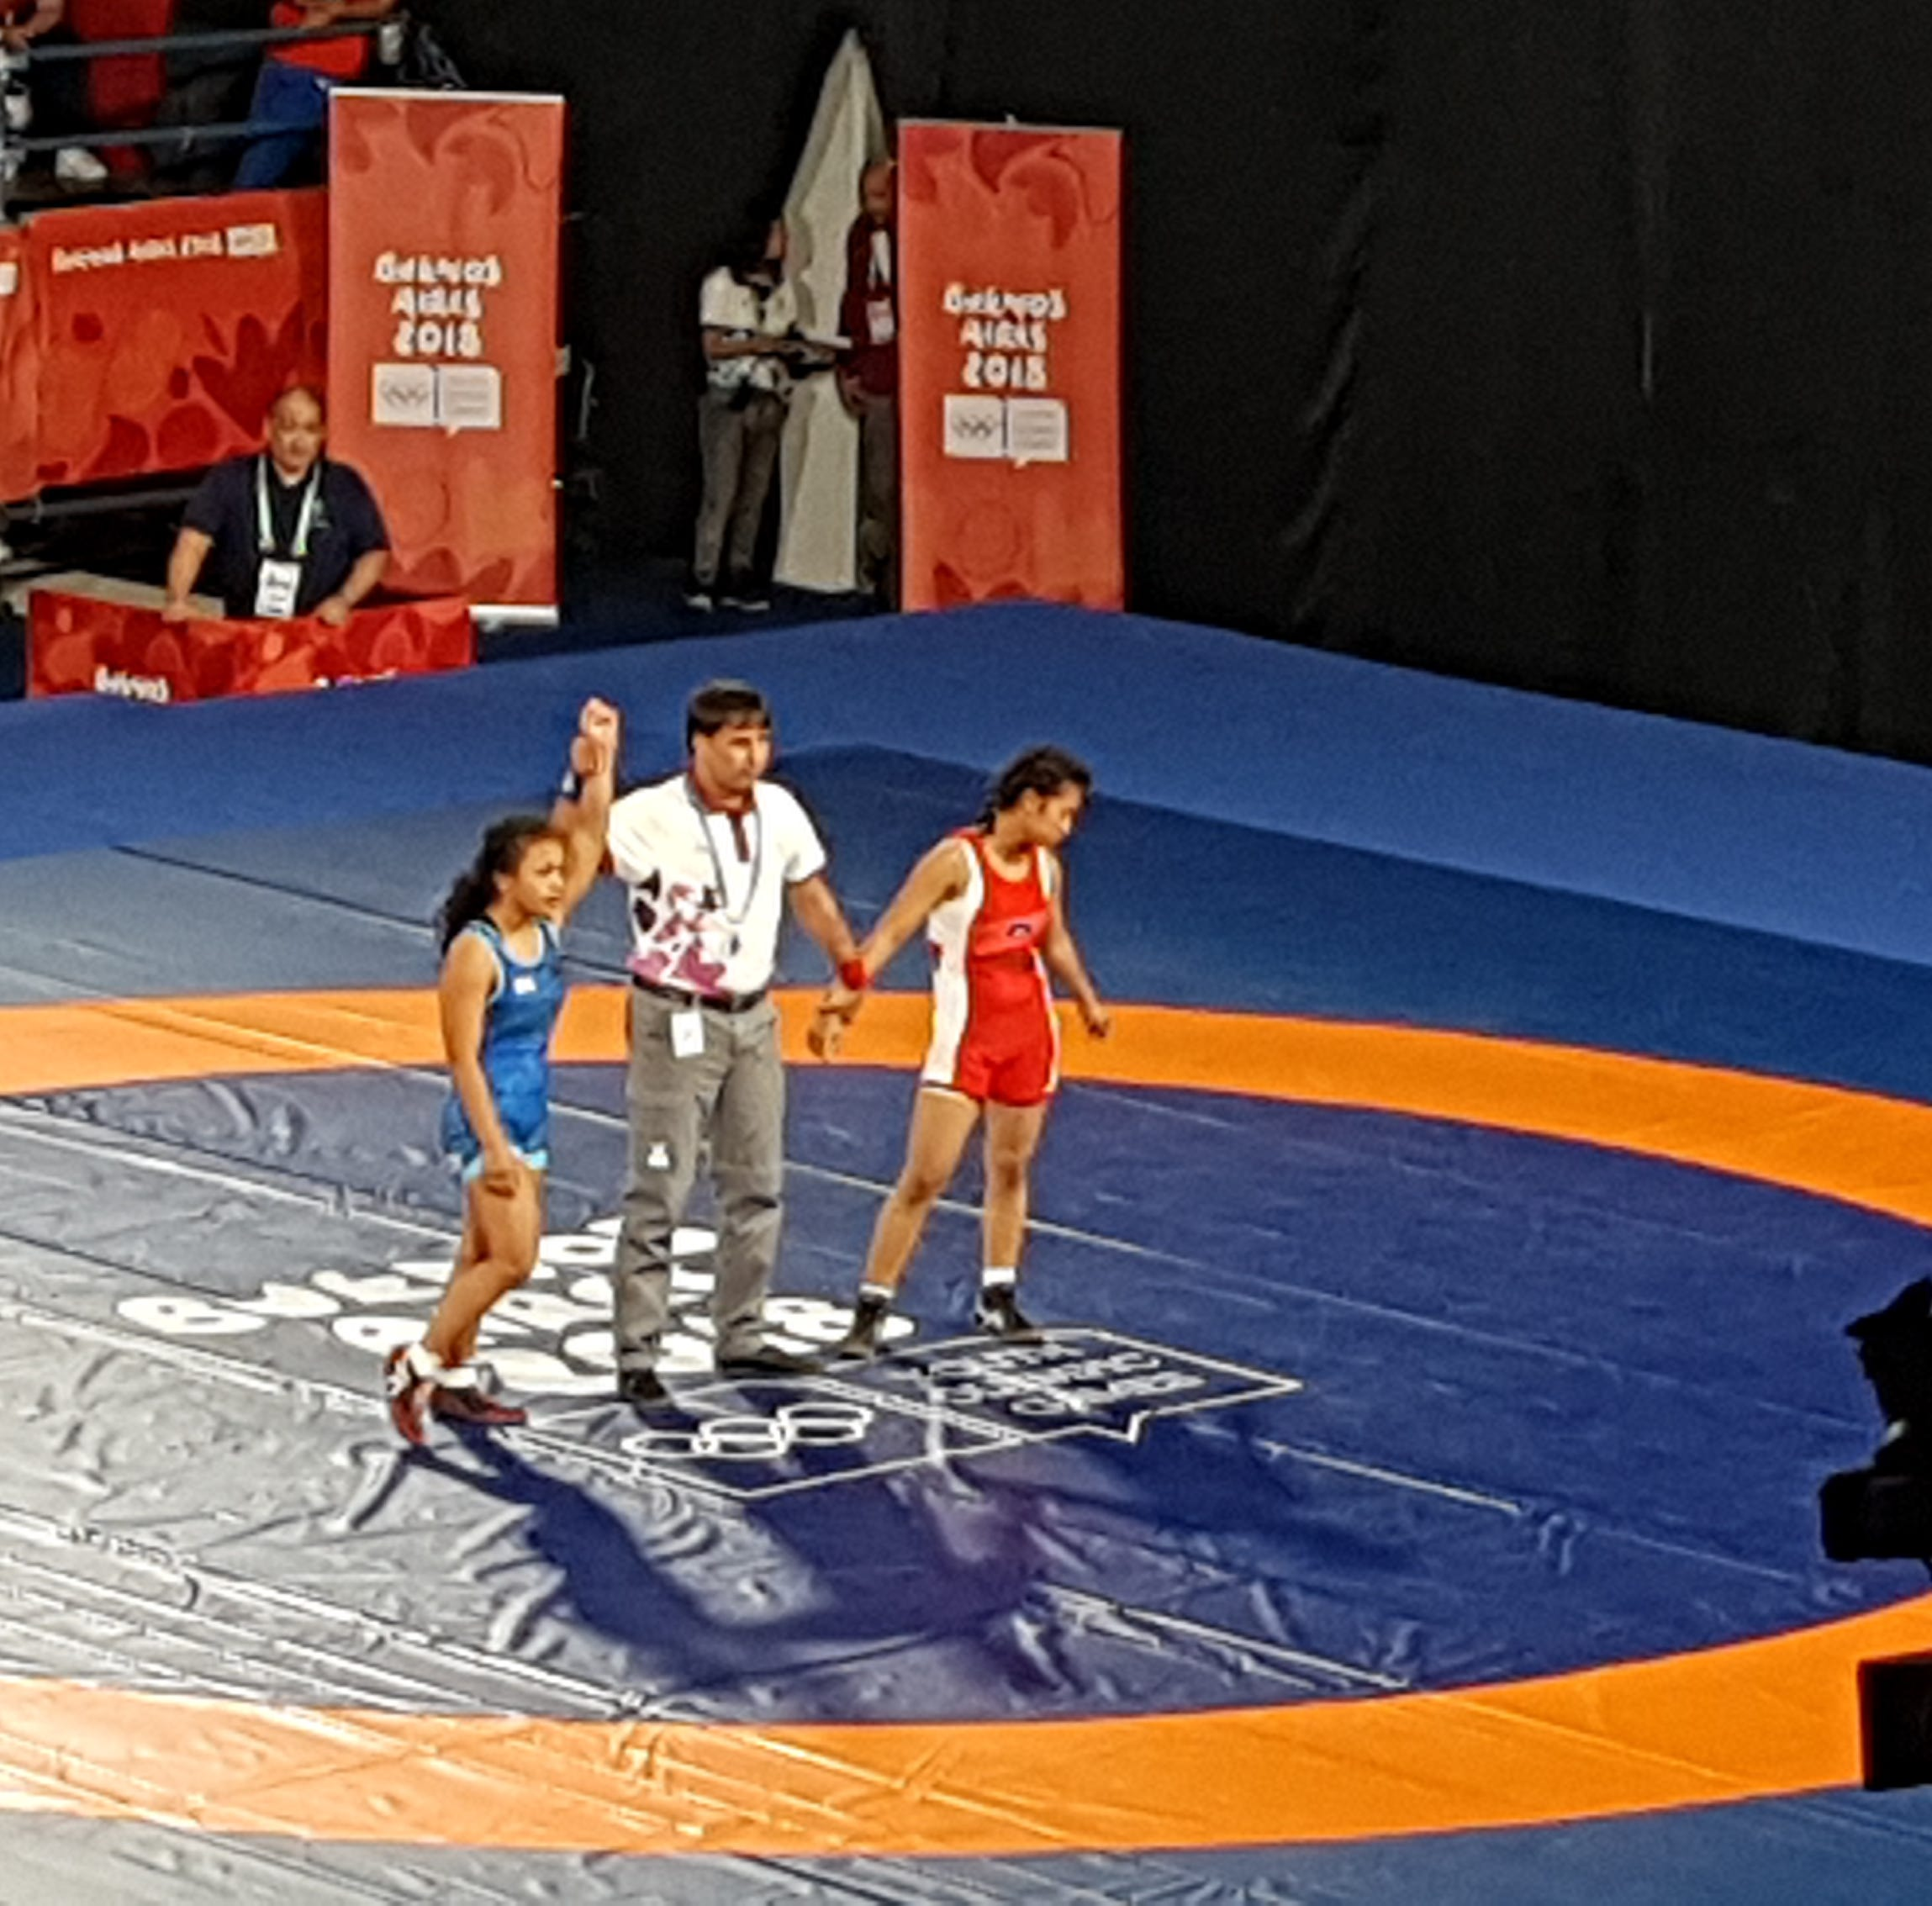 Paulina Duenas wins match at Youth Olympics